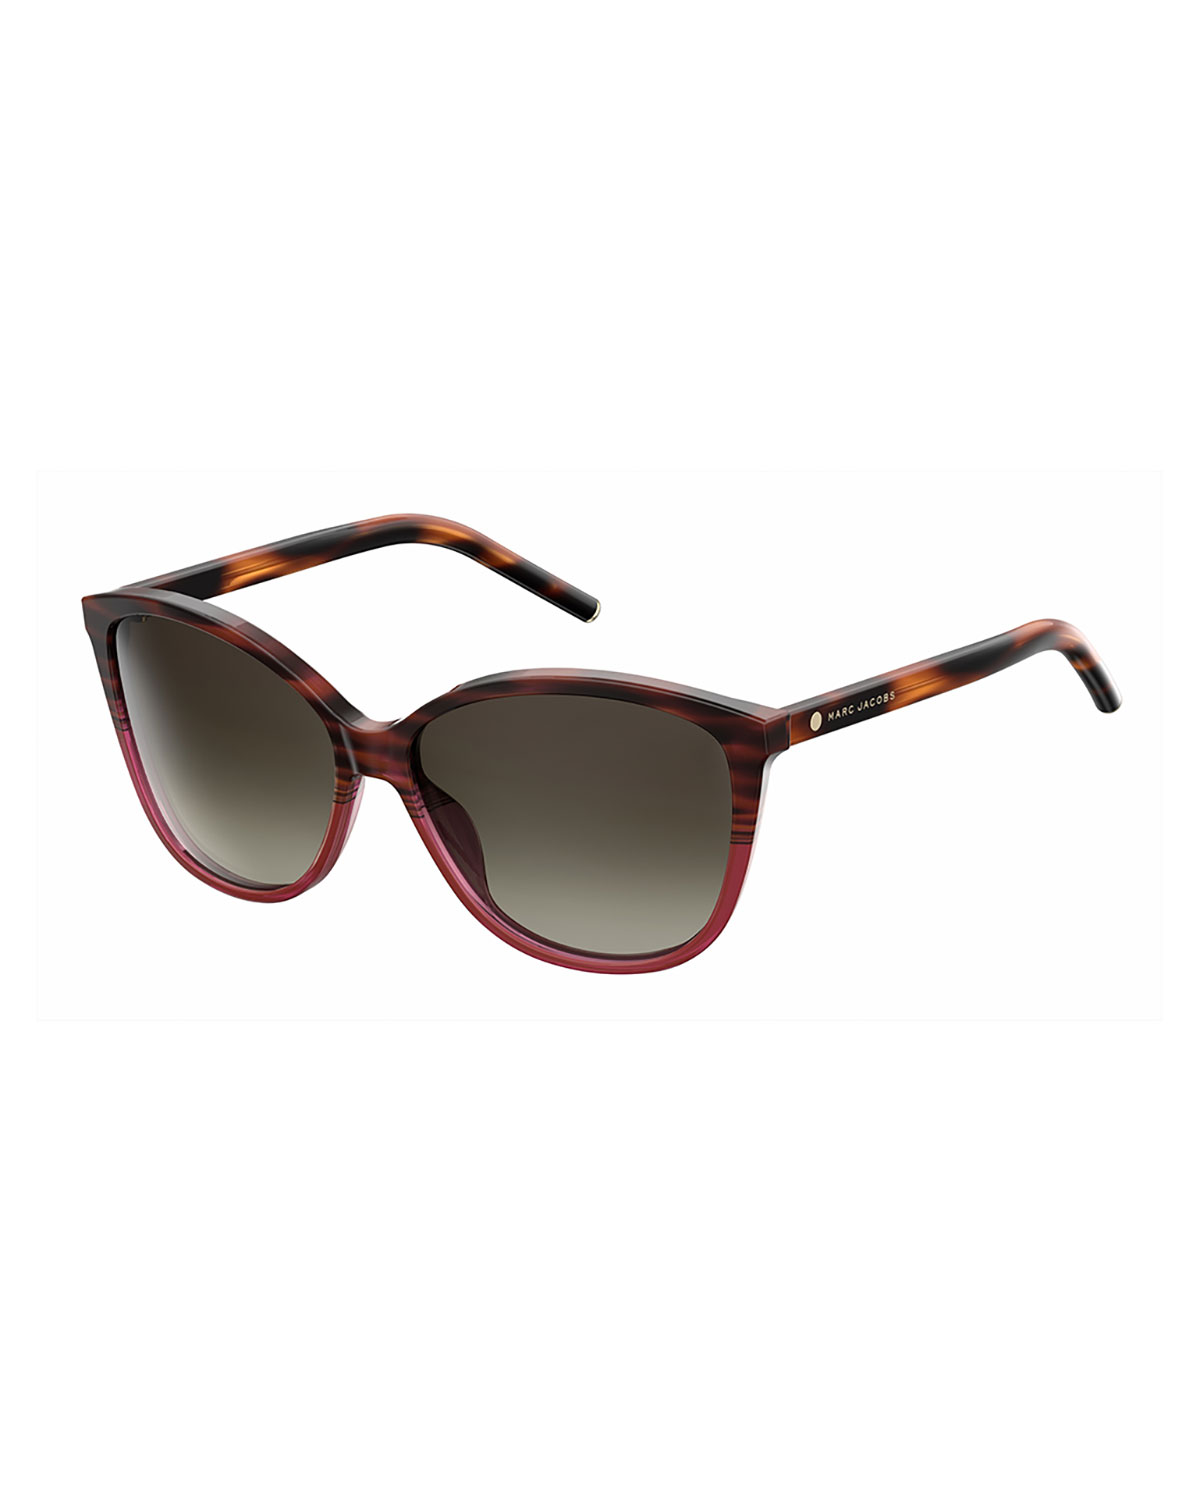 8171d3cb195 Marc Jacobs Gradient Squared Cat-Eye Sunglasses